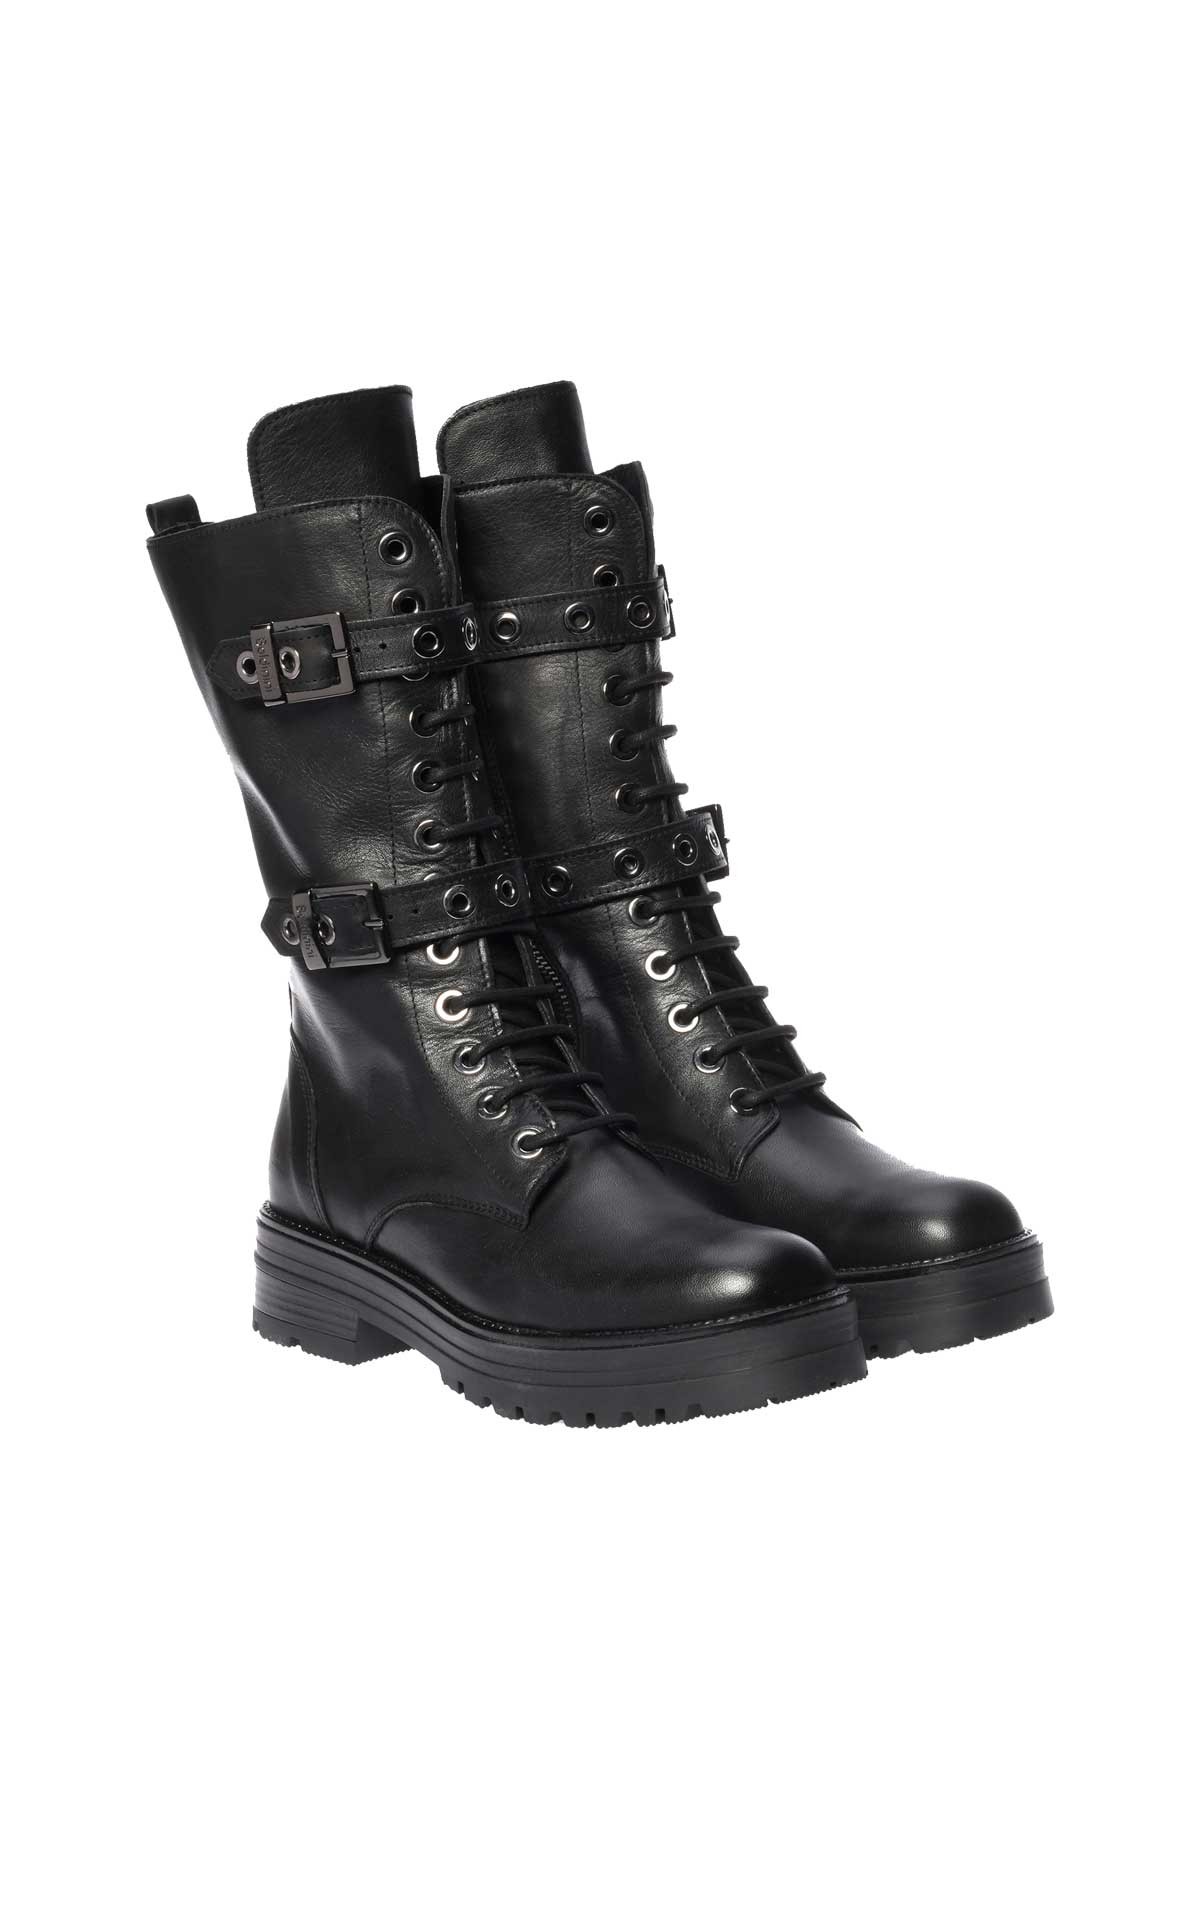 Black leather biker boot Baldinini